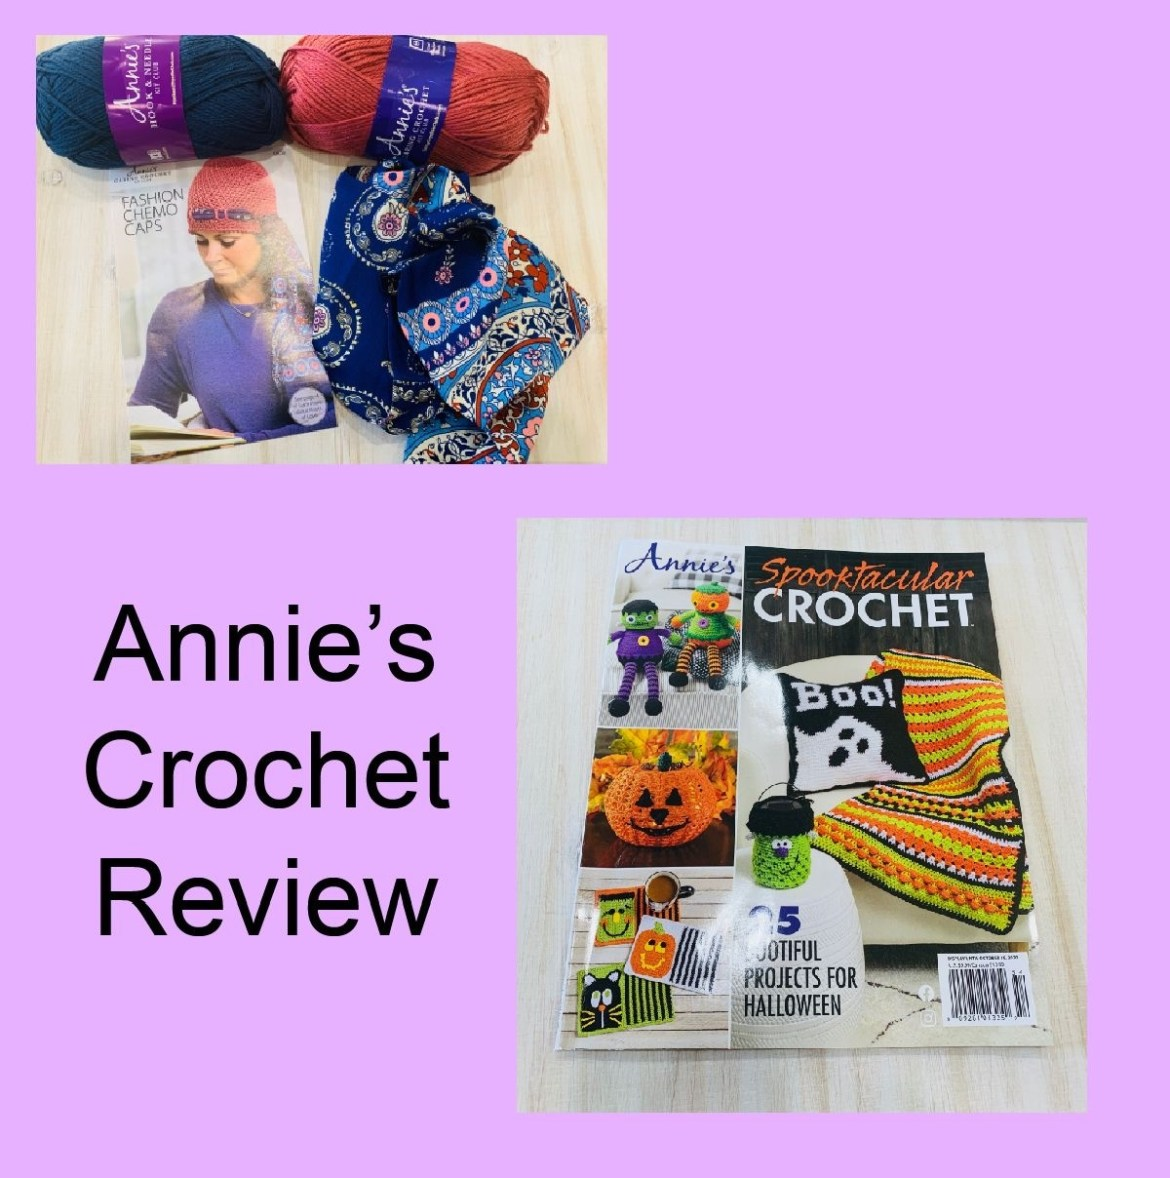 My Review of Annie's Kit Clubs and Spooktackular Crochet Magazine